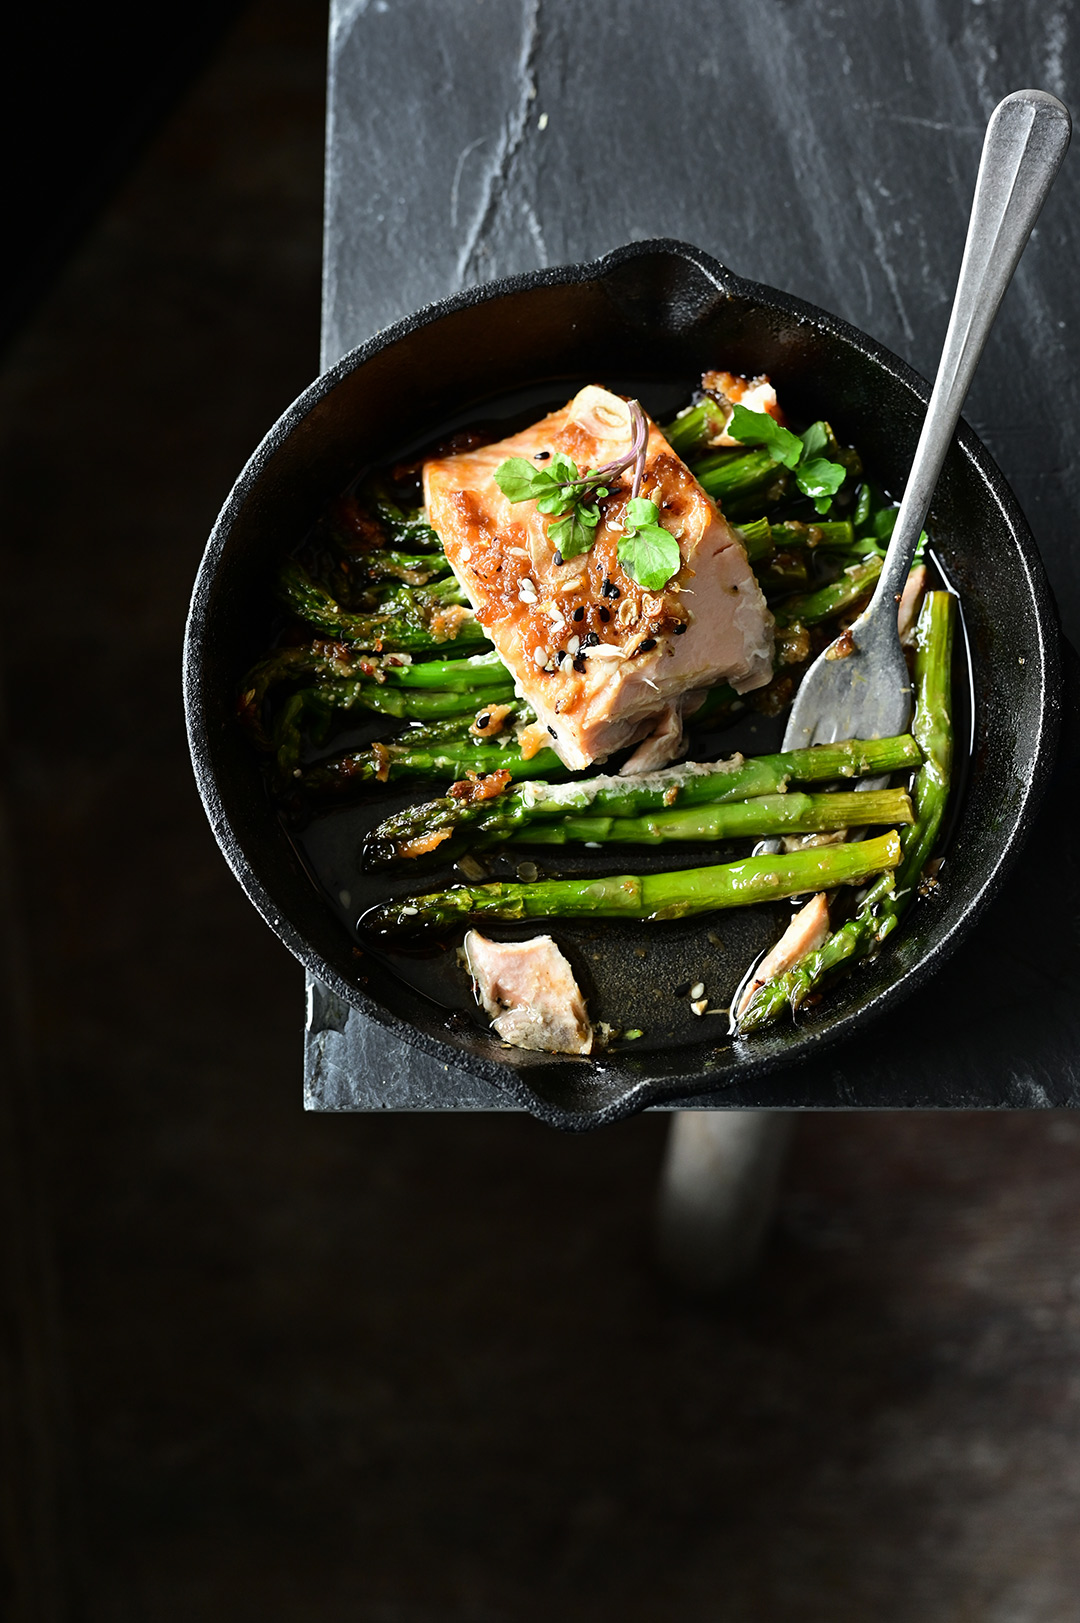 serving dumplings | Miso roasted salmon with asparagus